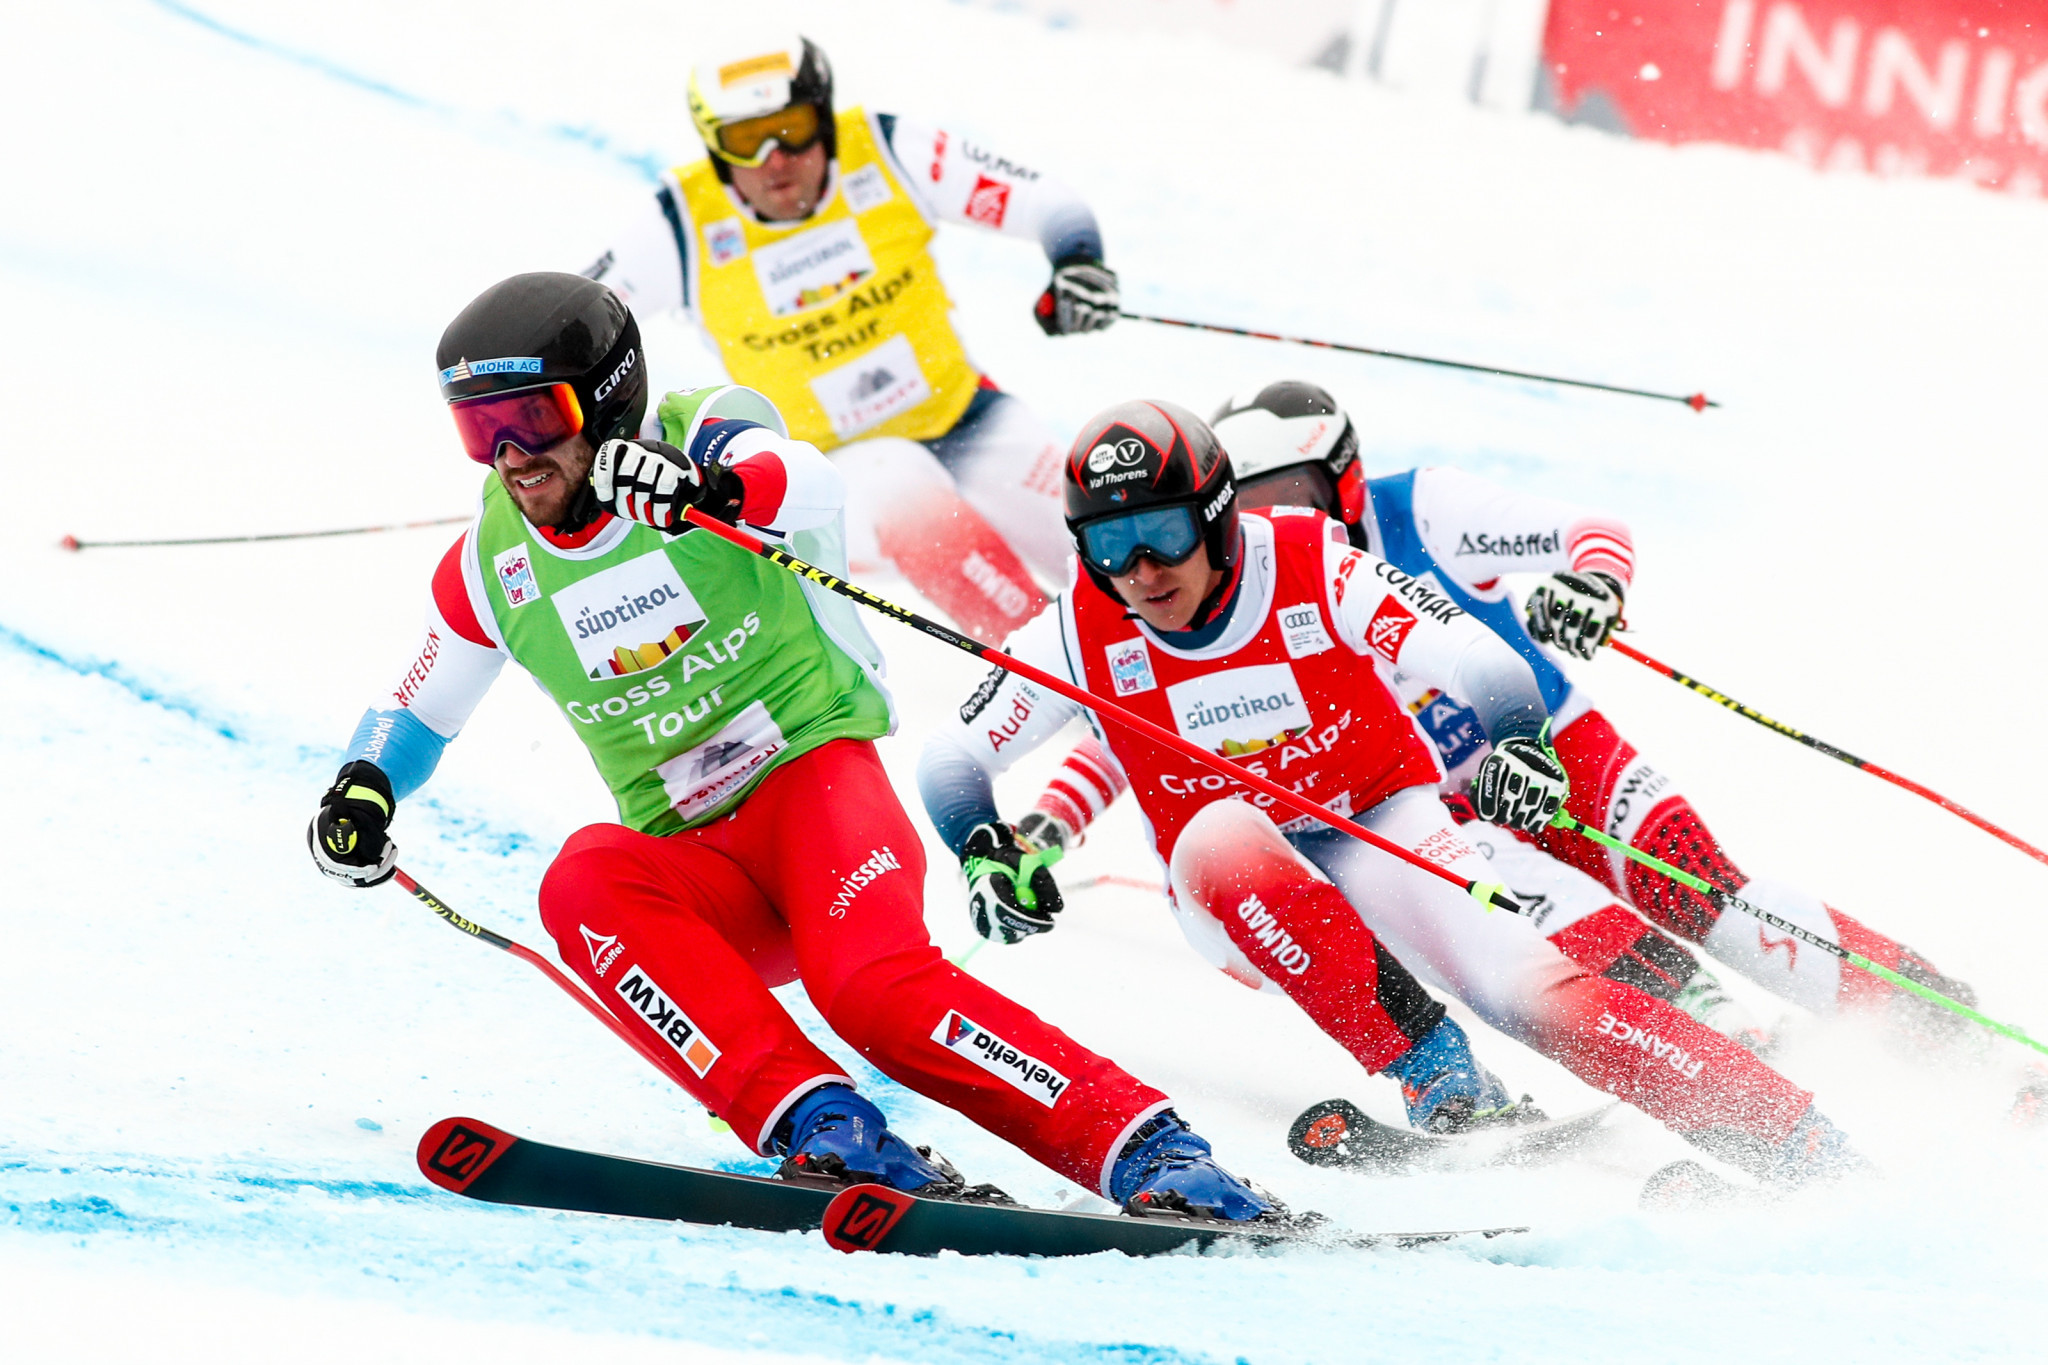 Swiss stars clinch wins at FIS Freestyle Ski Cross World Cup in Innichen